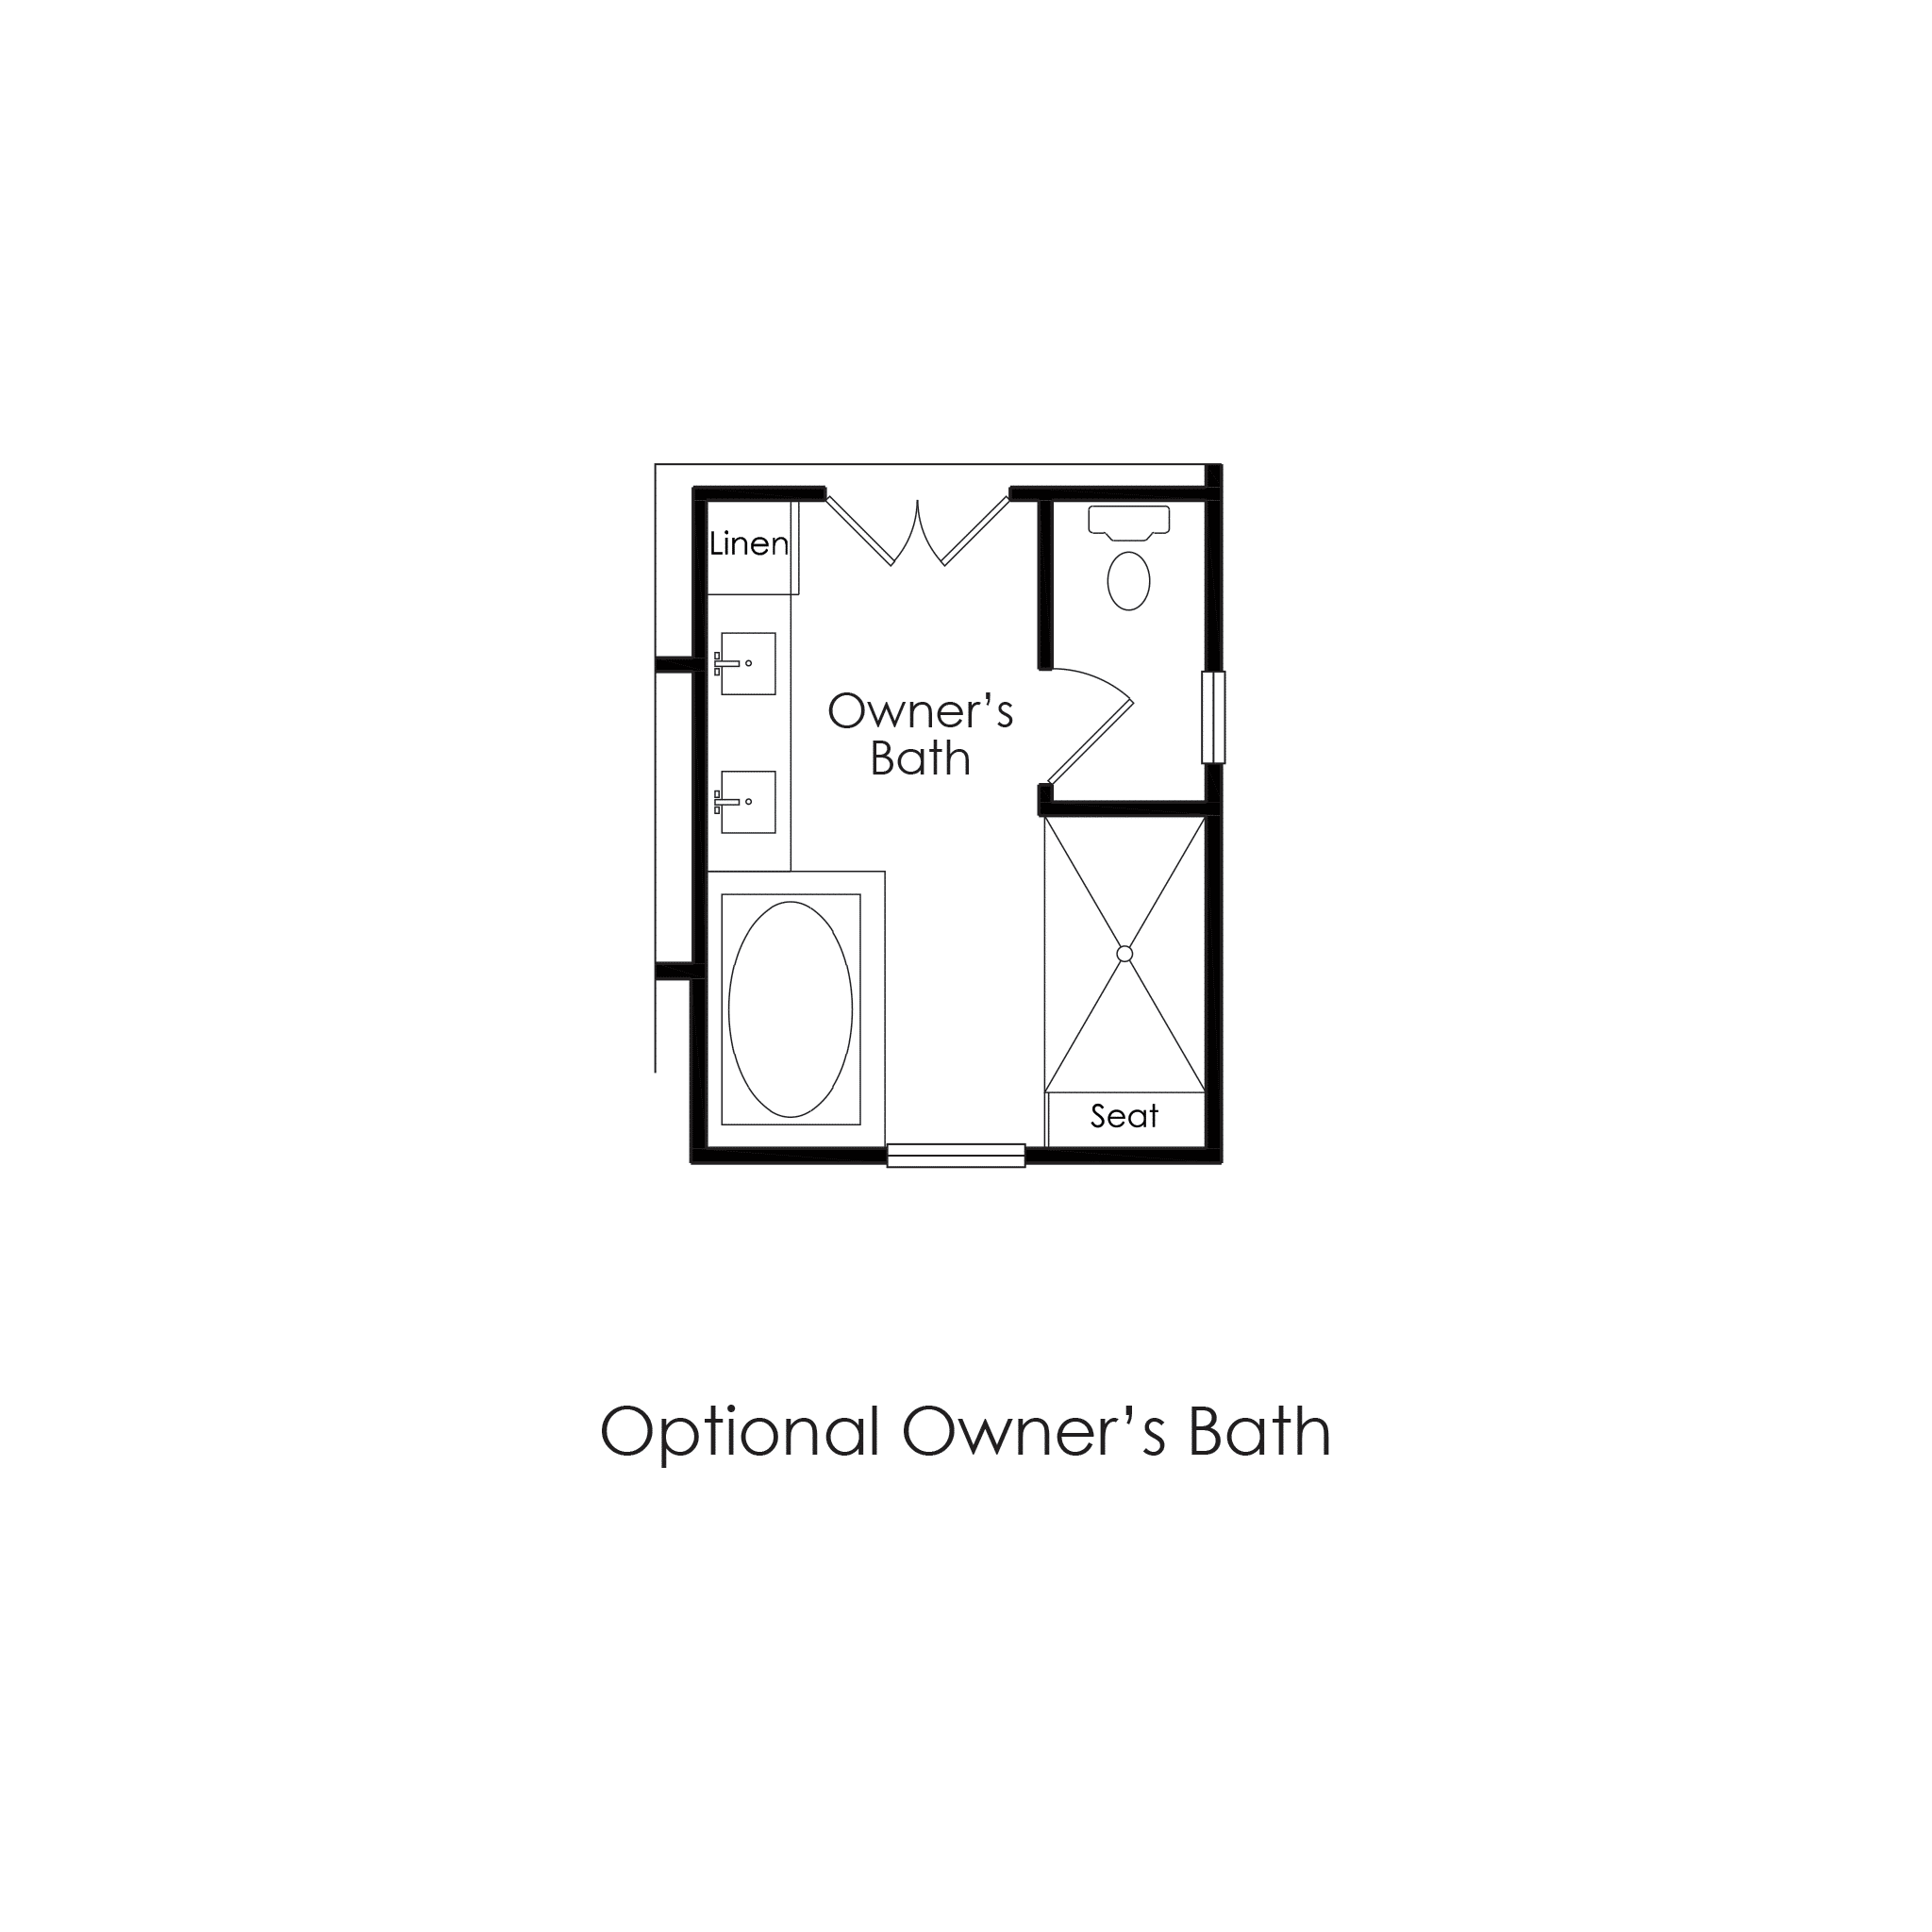 Second Floor – Optional Owners Bathroom